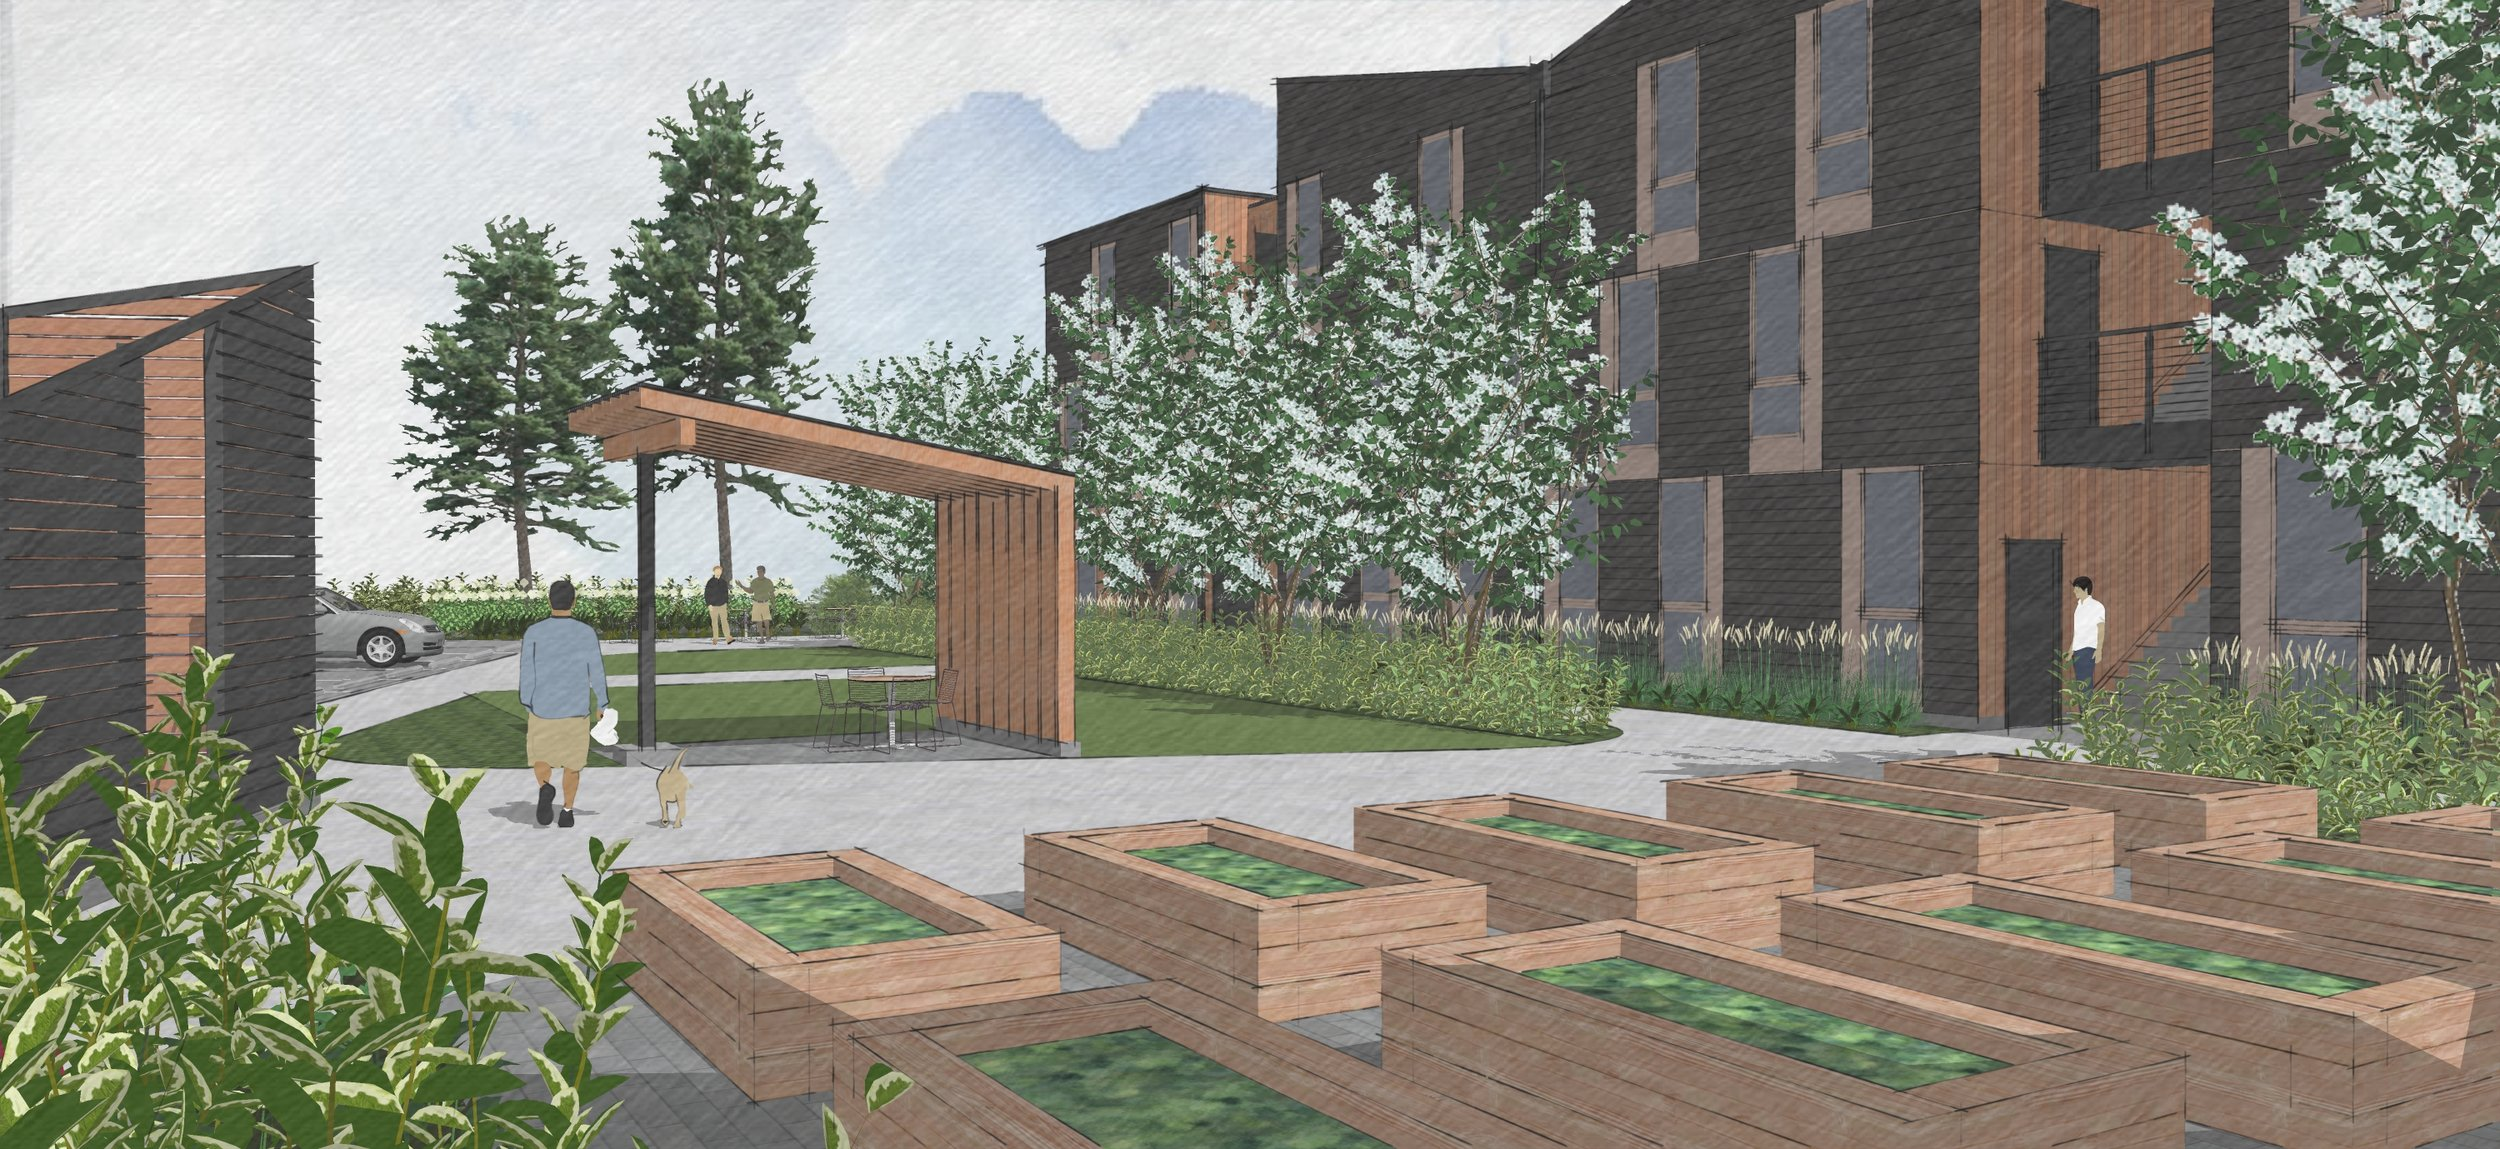 Progress rendering of the landscape design at The Elwood